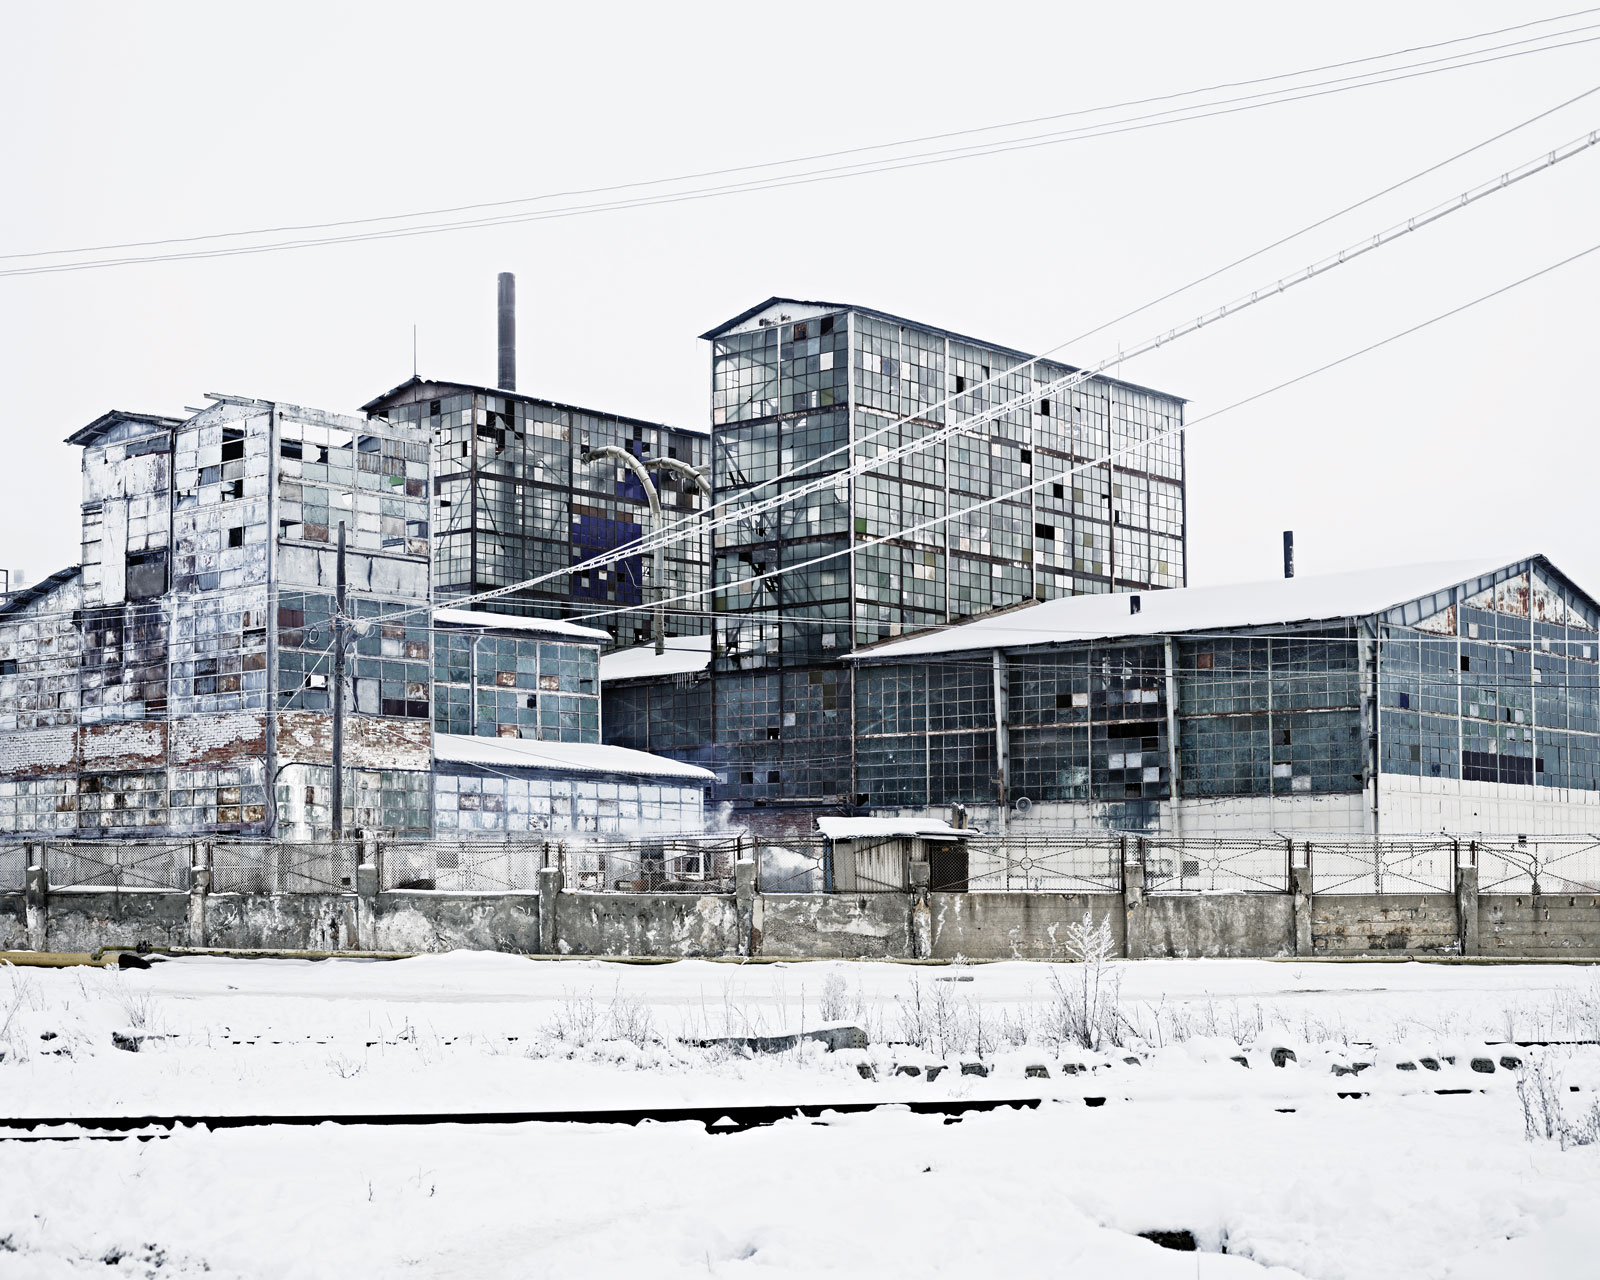 <i>Sodium Factory</i> (Ocna-Mures, Central Romania), 2012